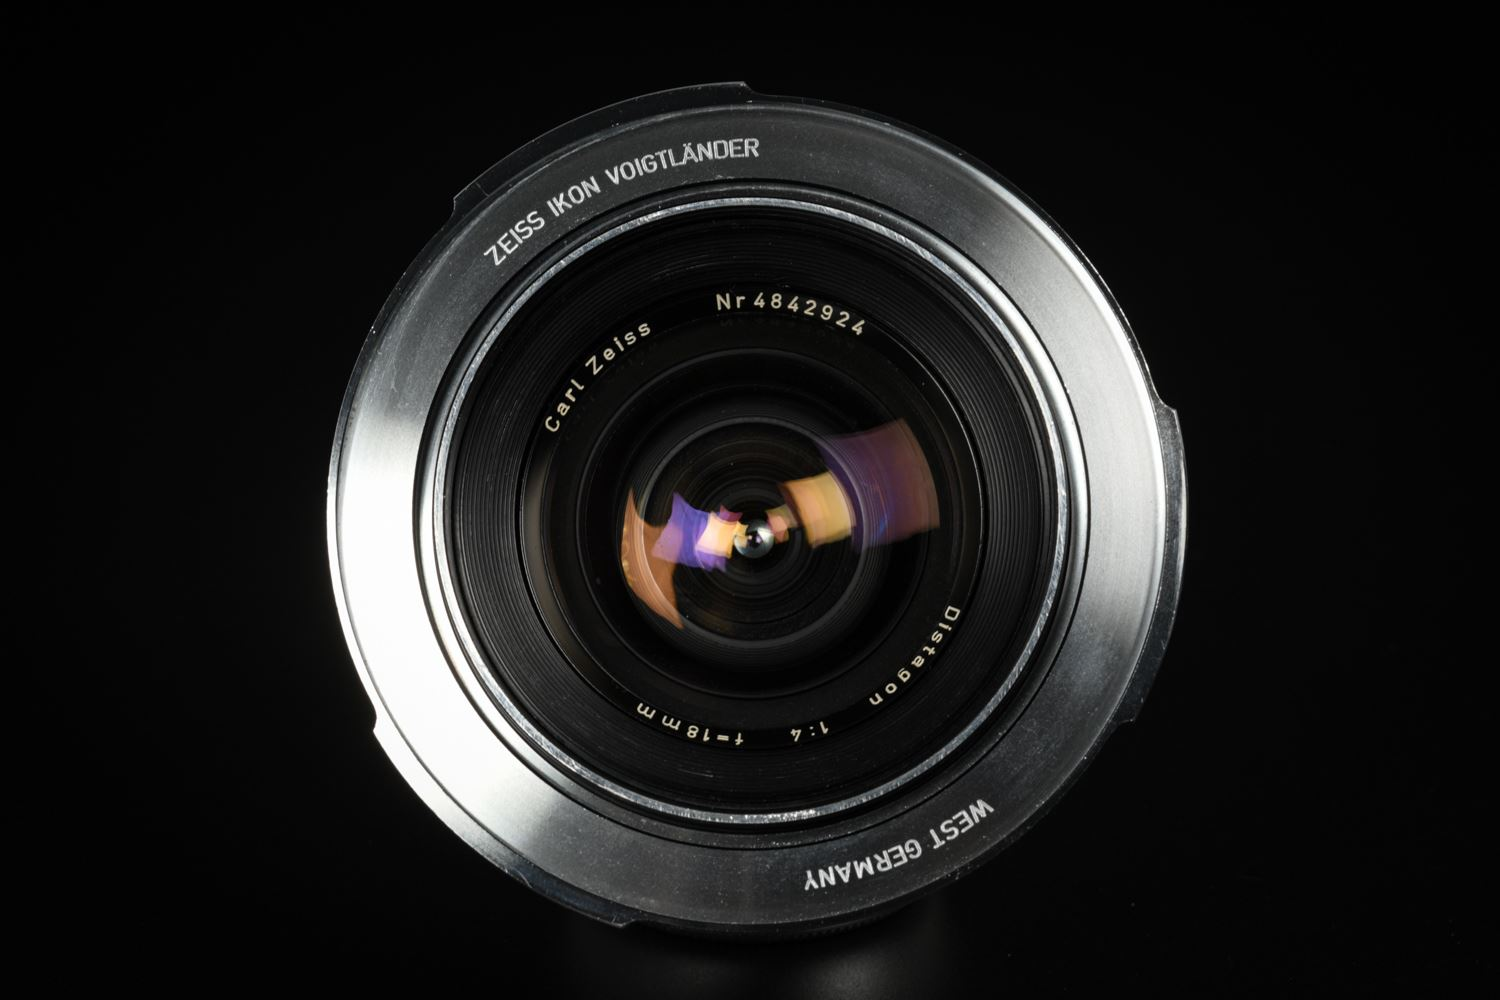 Picture of Contarex Distagon 18mm f/4